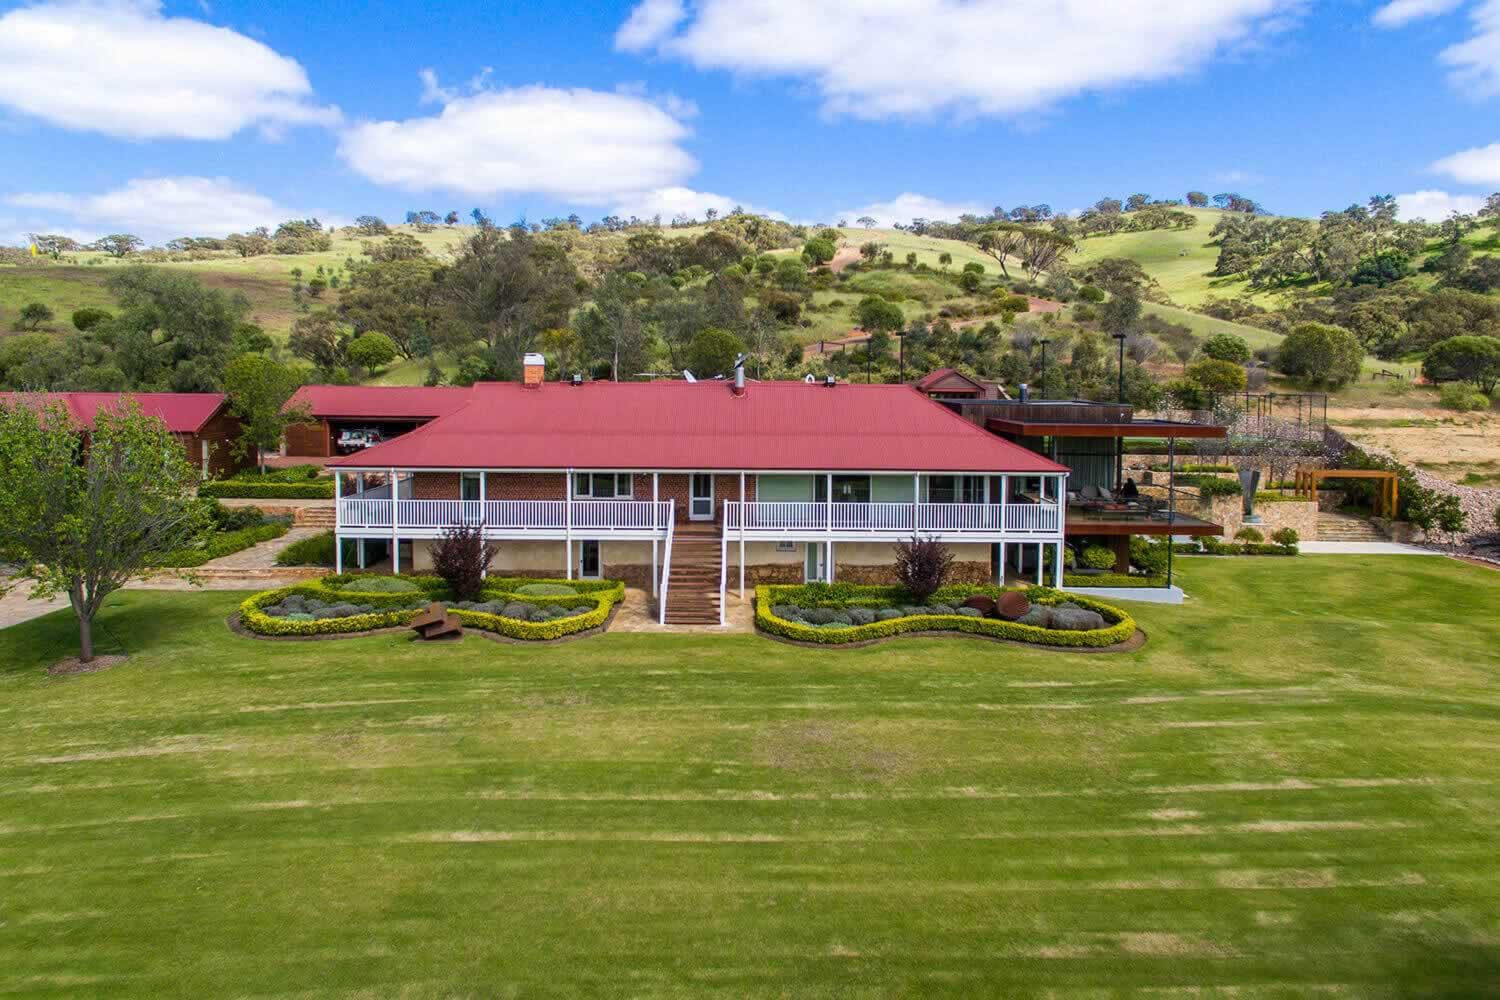 rural property for sale Western Australia